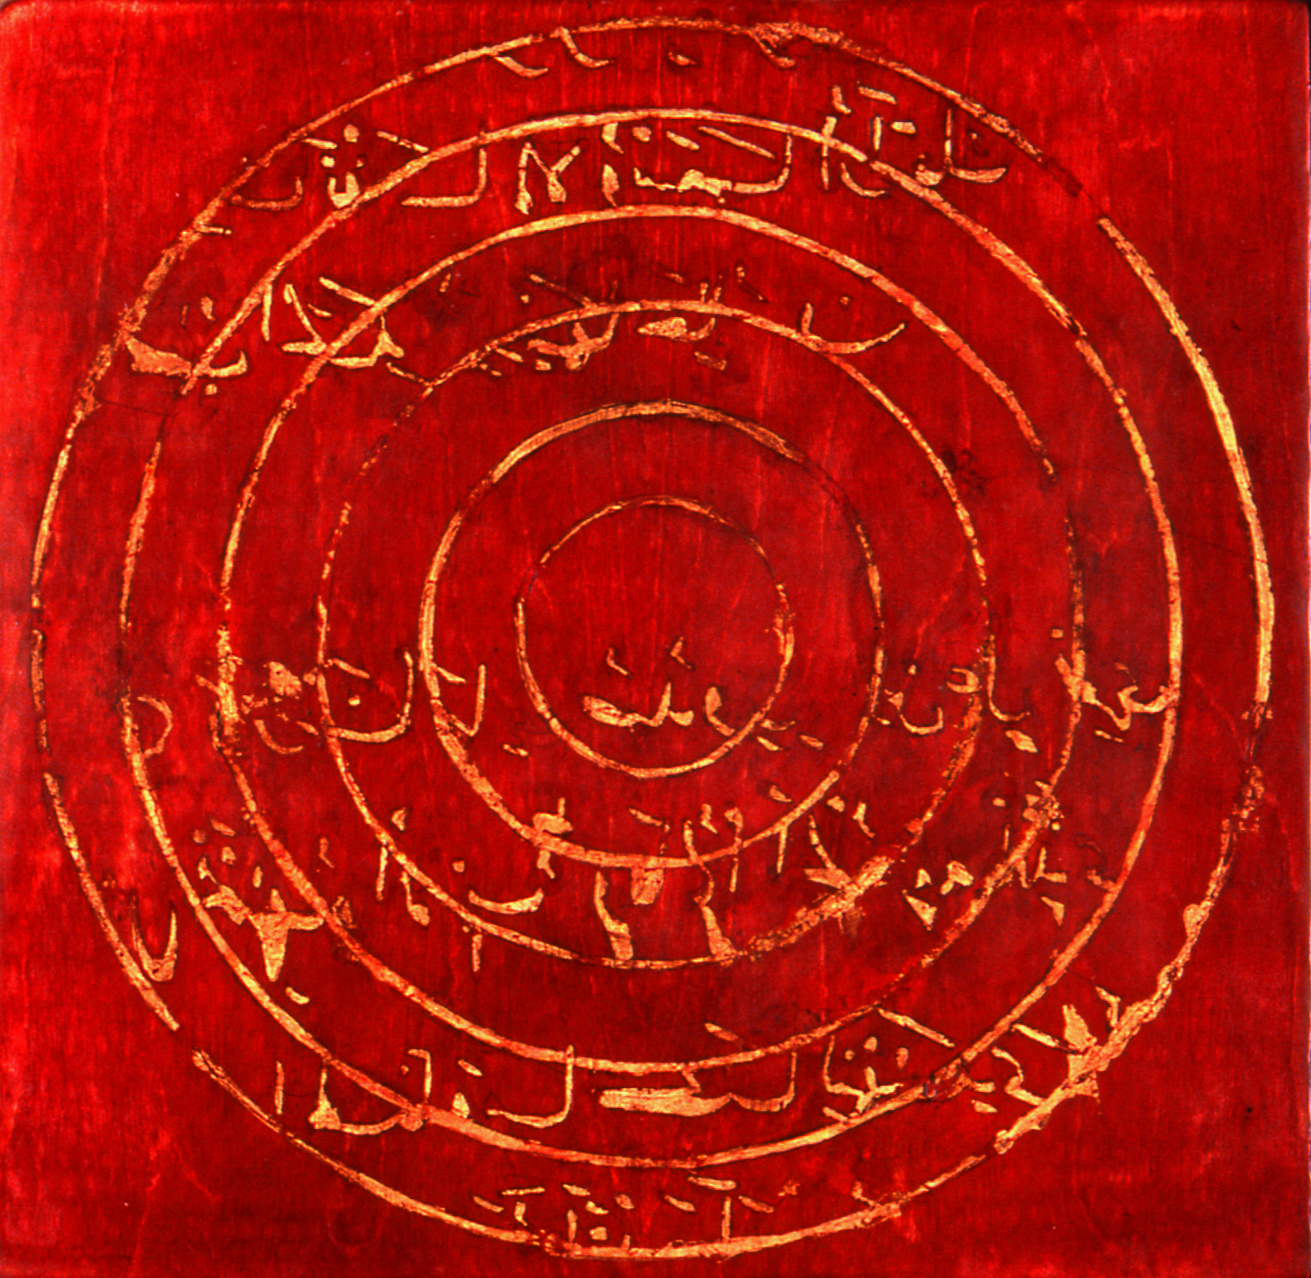 red circle 2006 16 x 16 x 3 oils gold leaf encaustic wood